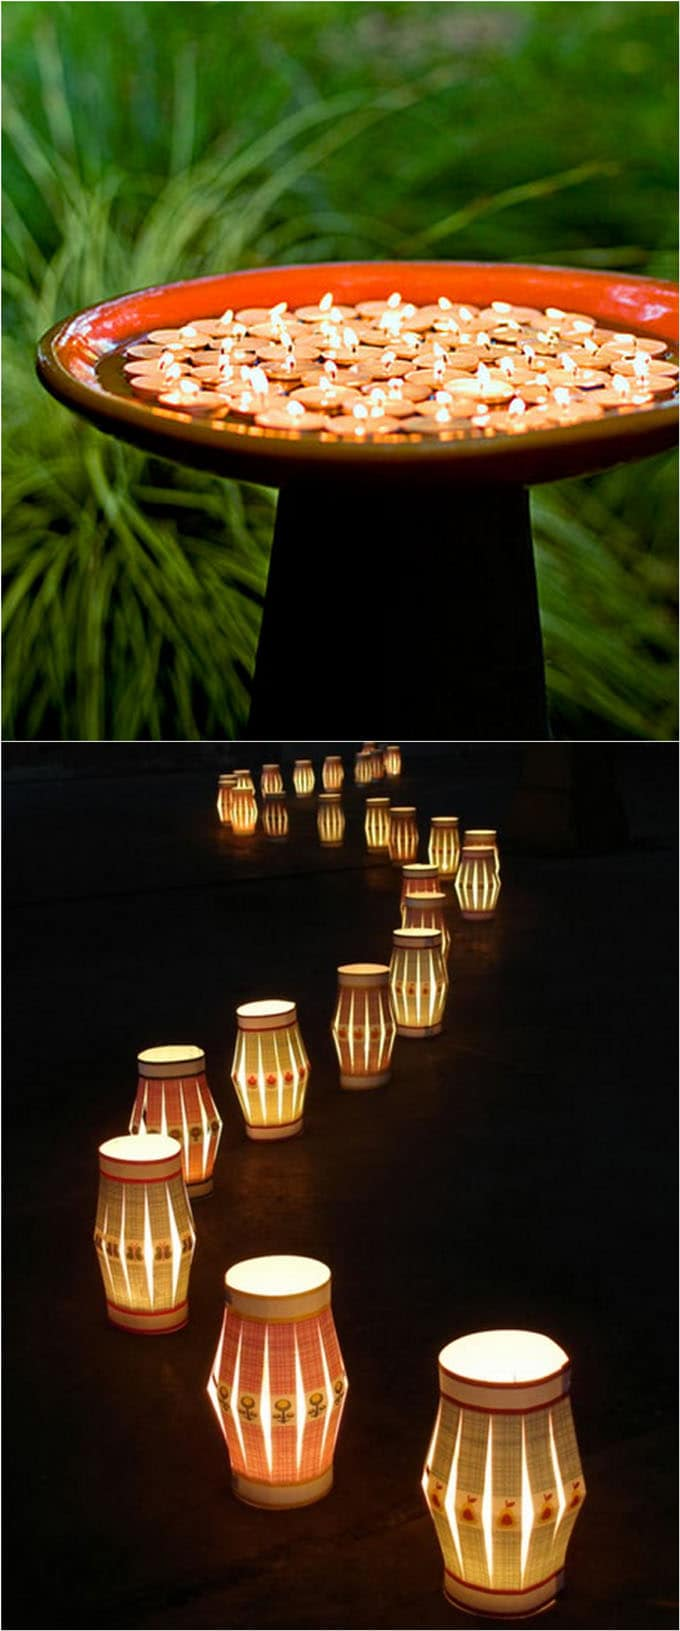 Outdoor Mason Jar Lights picture on diy outdoor lights with Outdoor Mason Jar Lights, Outdoor Lighting ideas aceac9958a7d4a4f34feb7f994f91d03